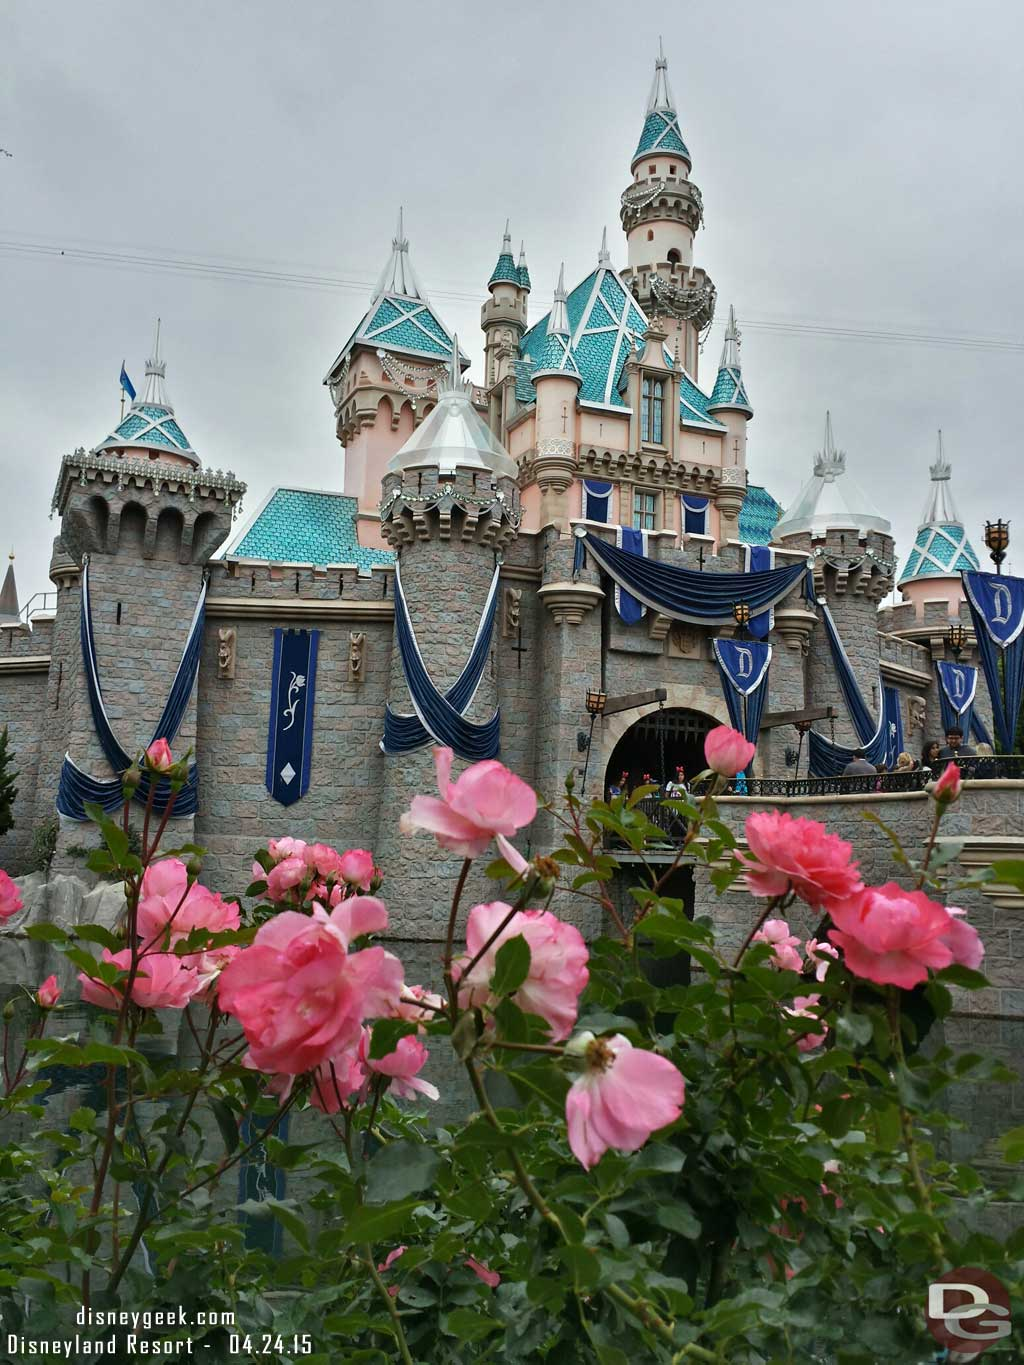 Sleeping Beauty Castle with some roses in the foreground #Disneyland